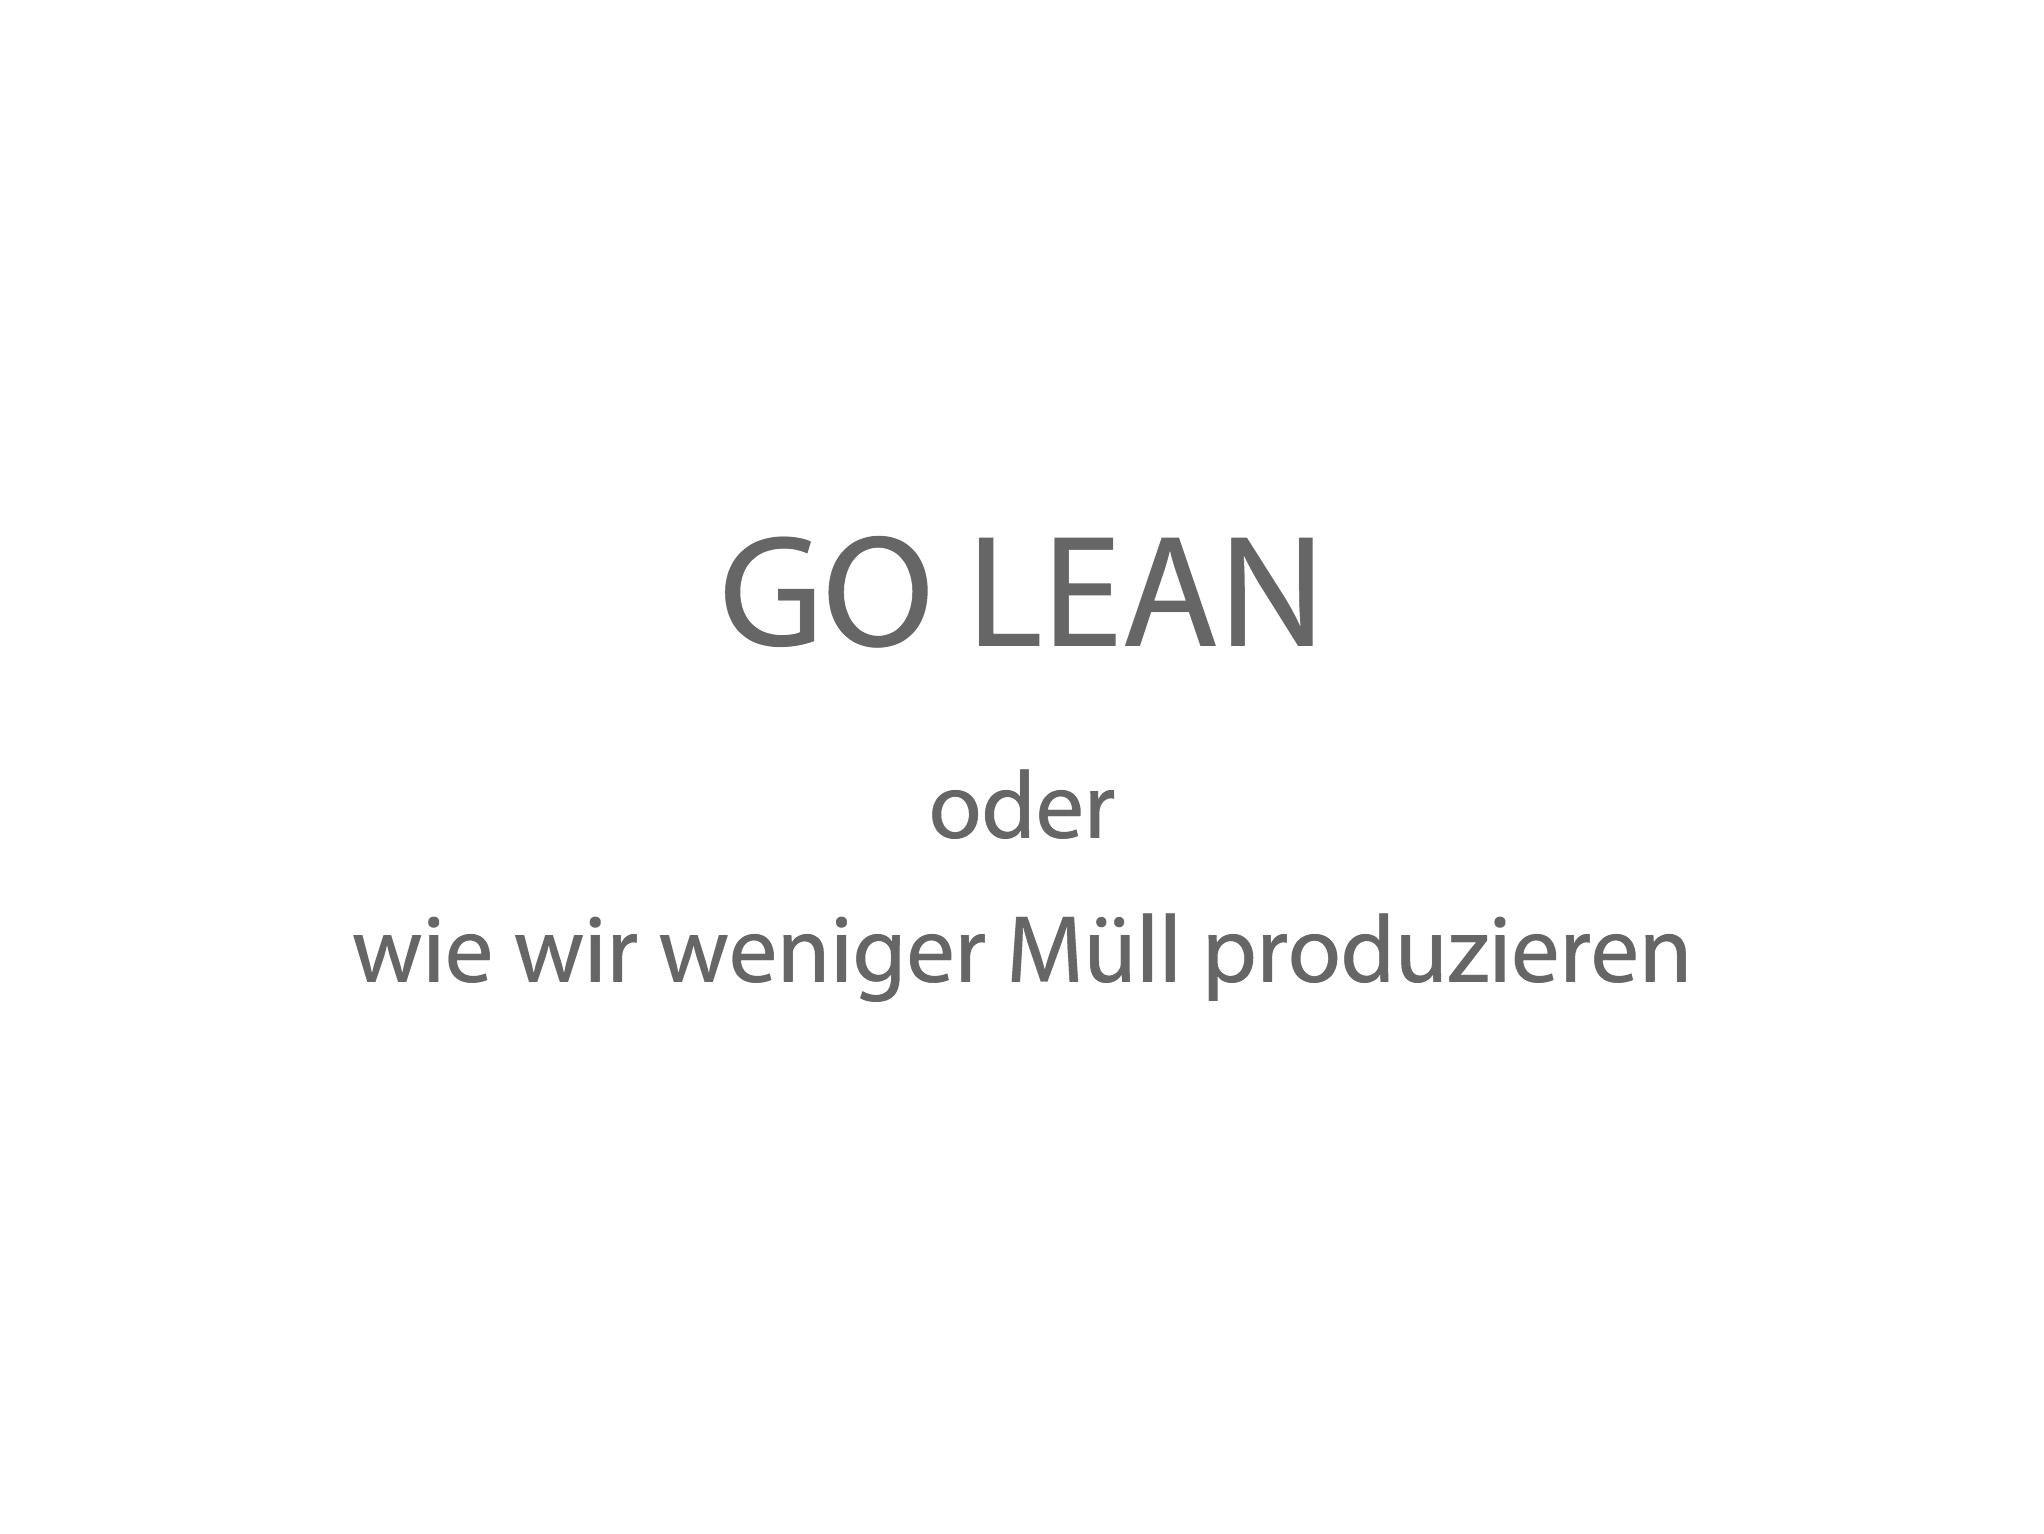 Slides for Go Lean